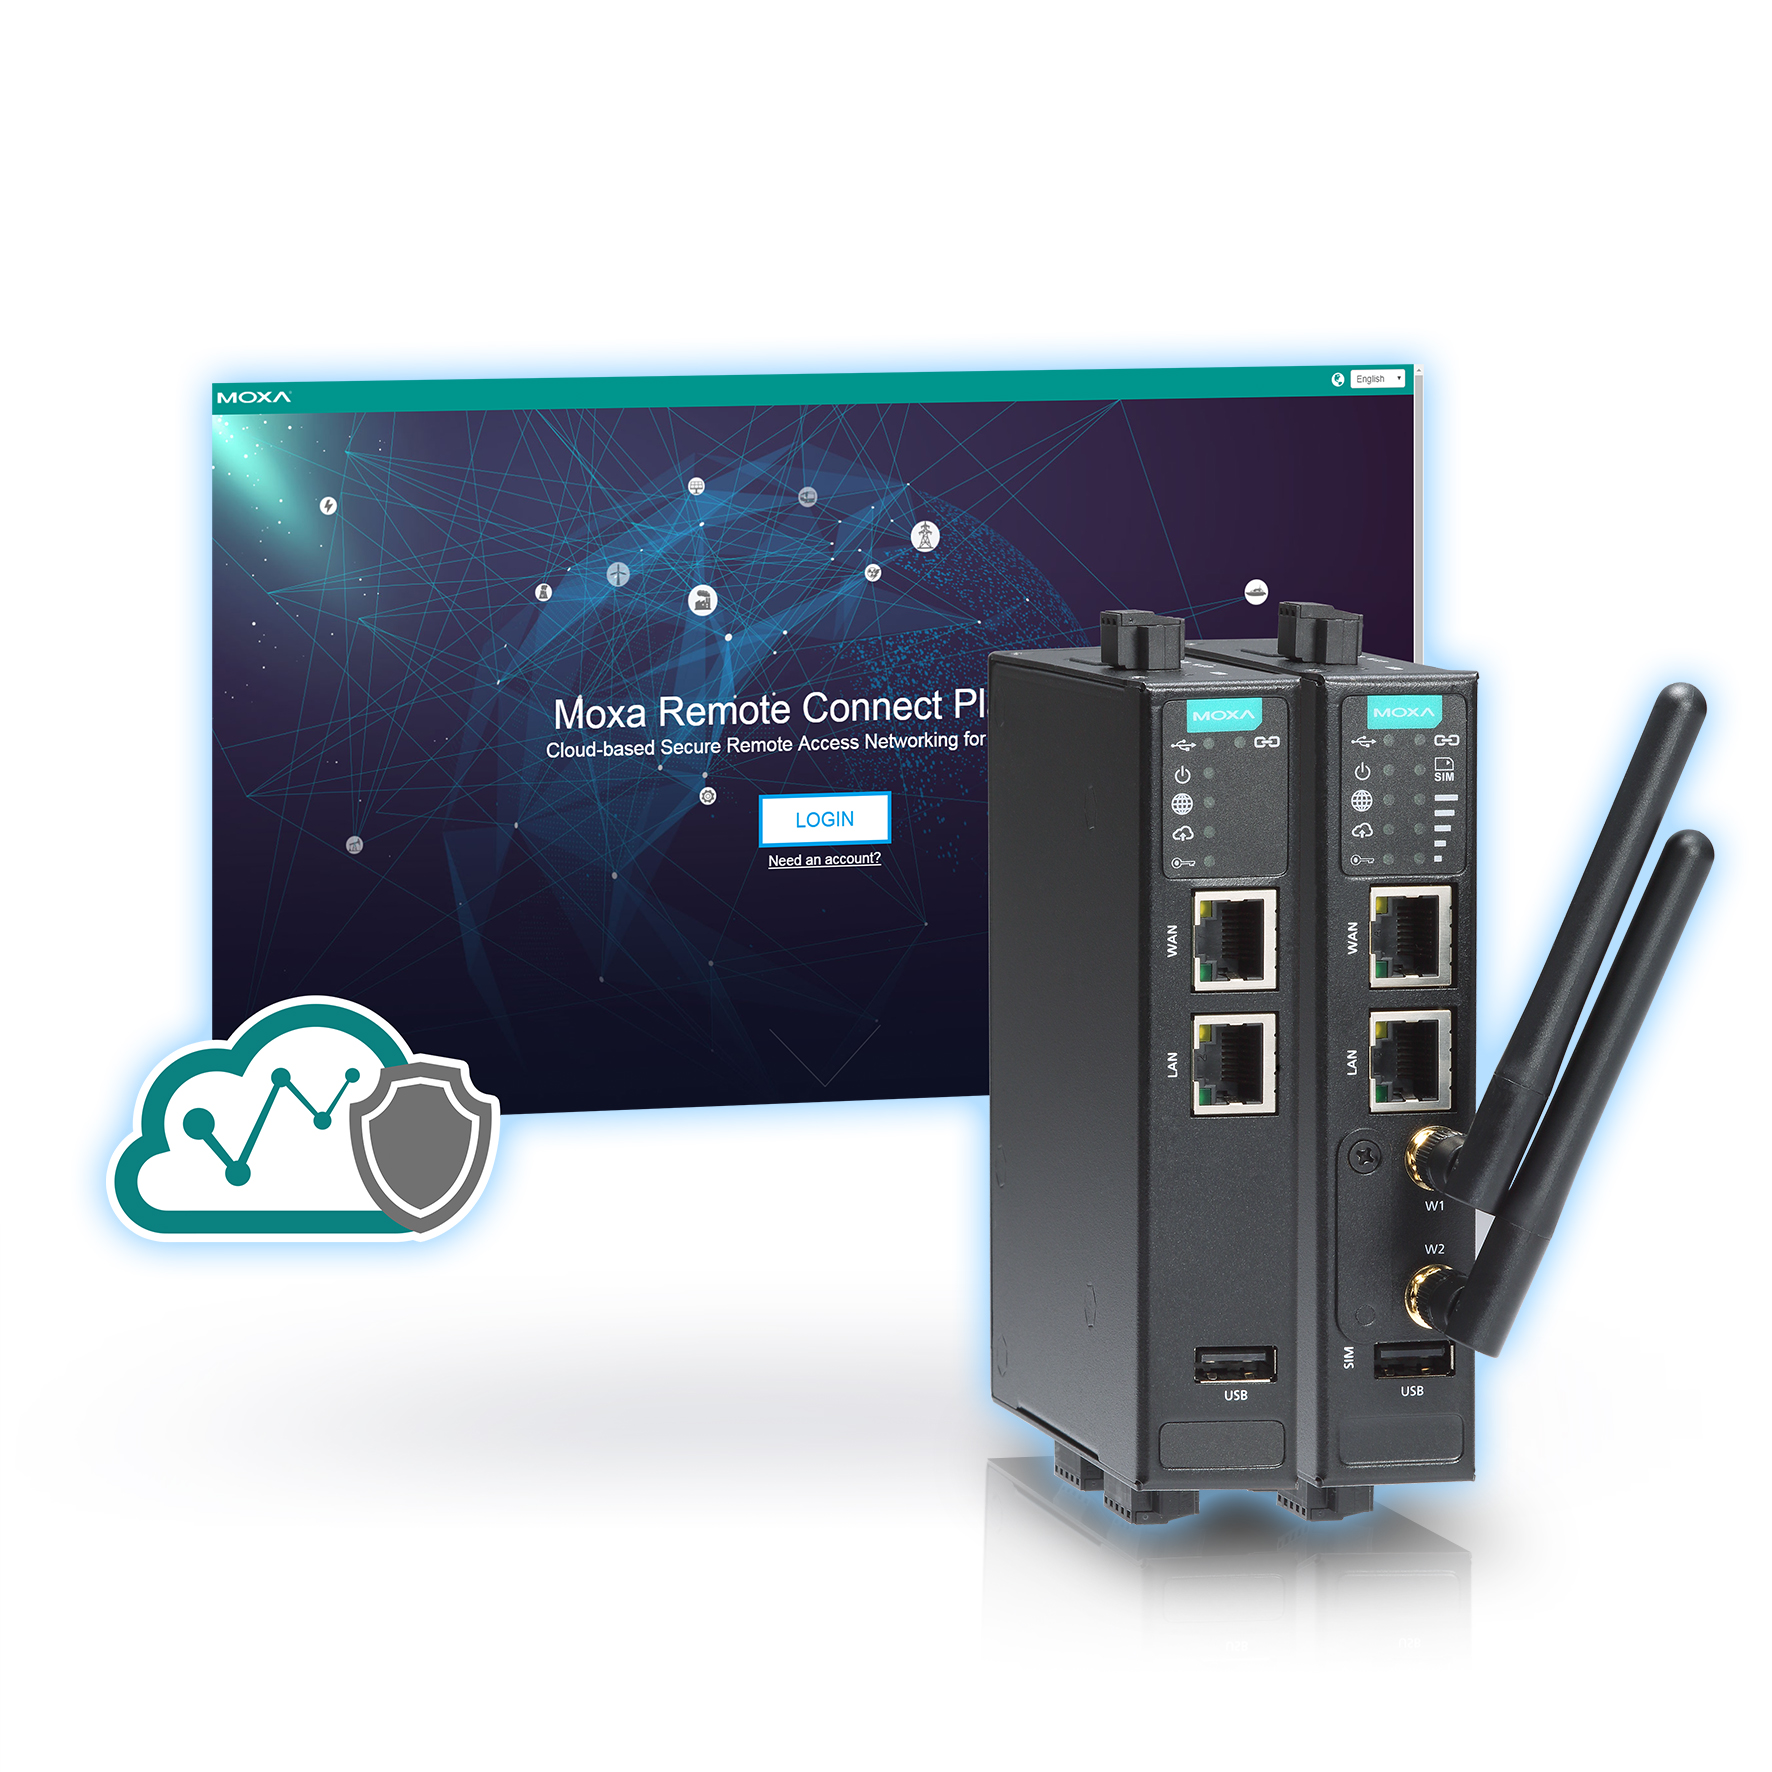 Cloud-based Secure Remote Access Solution Designed for Effortless Connection to IoT Devices